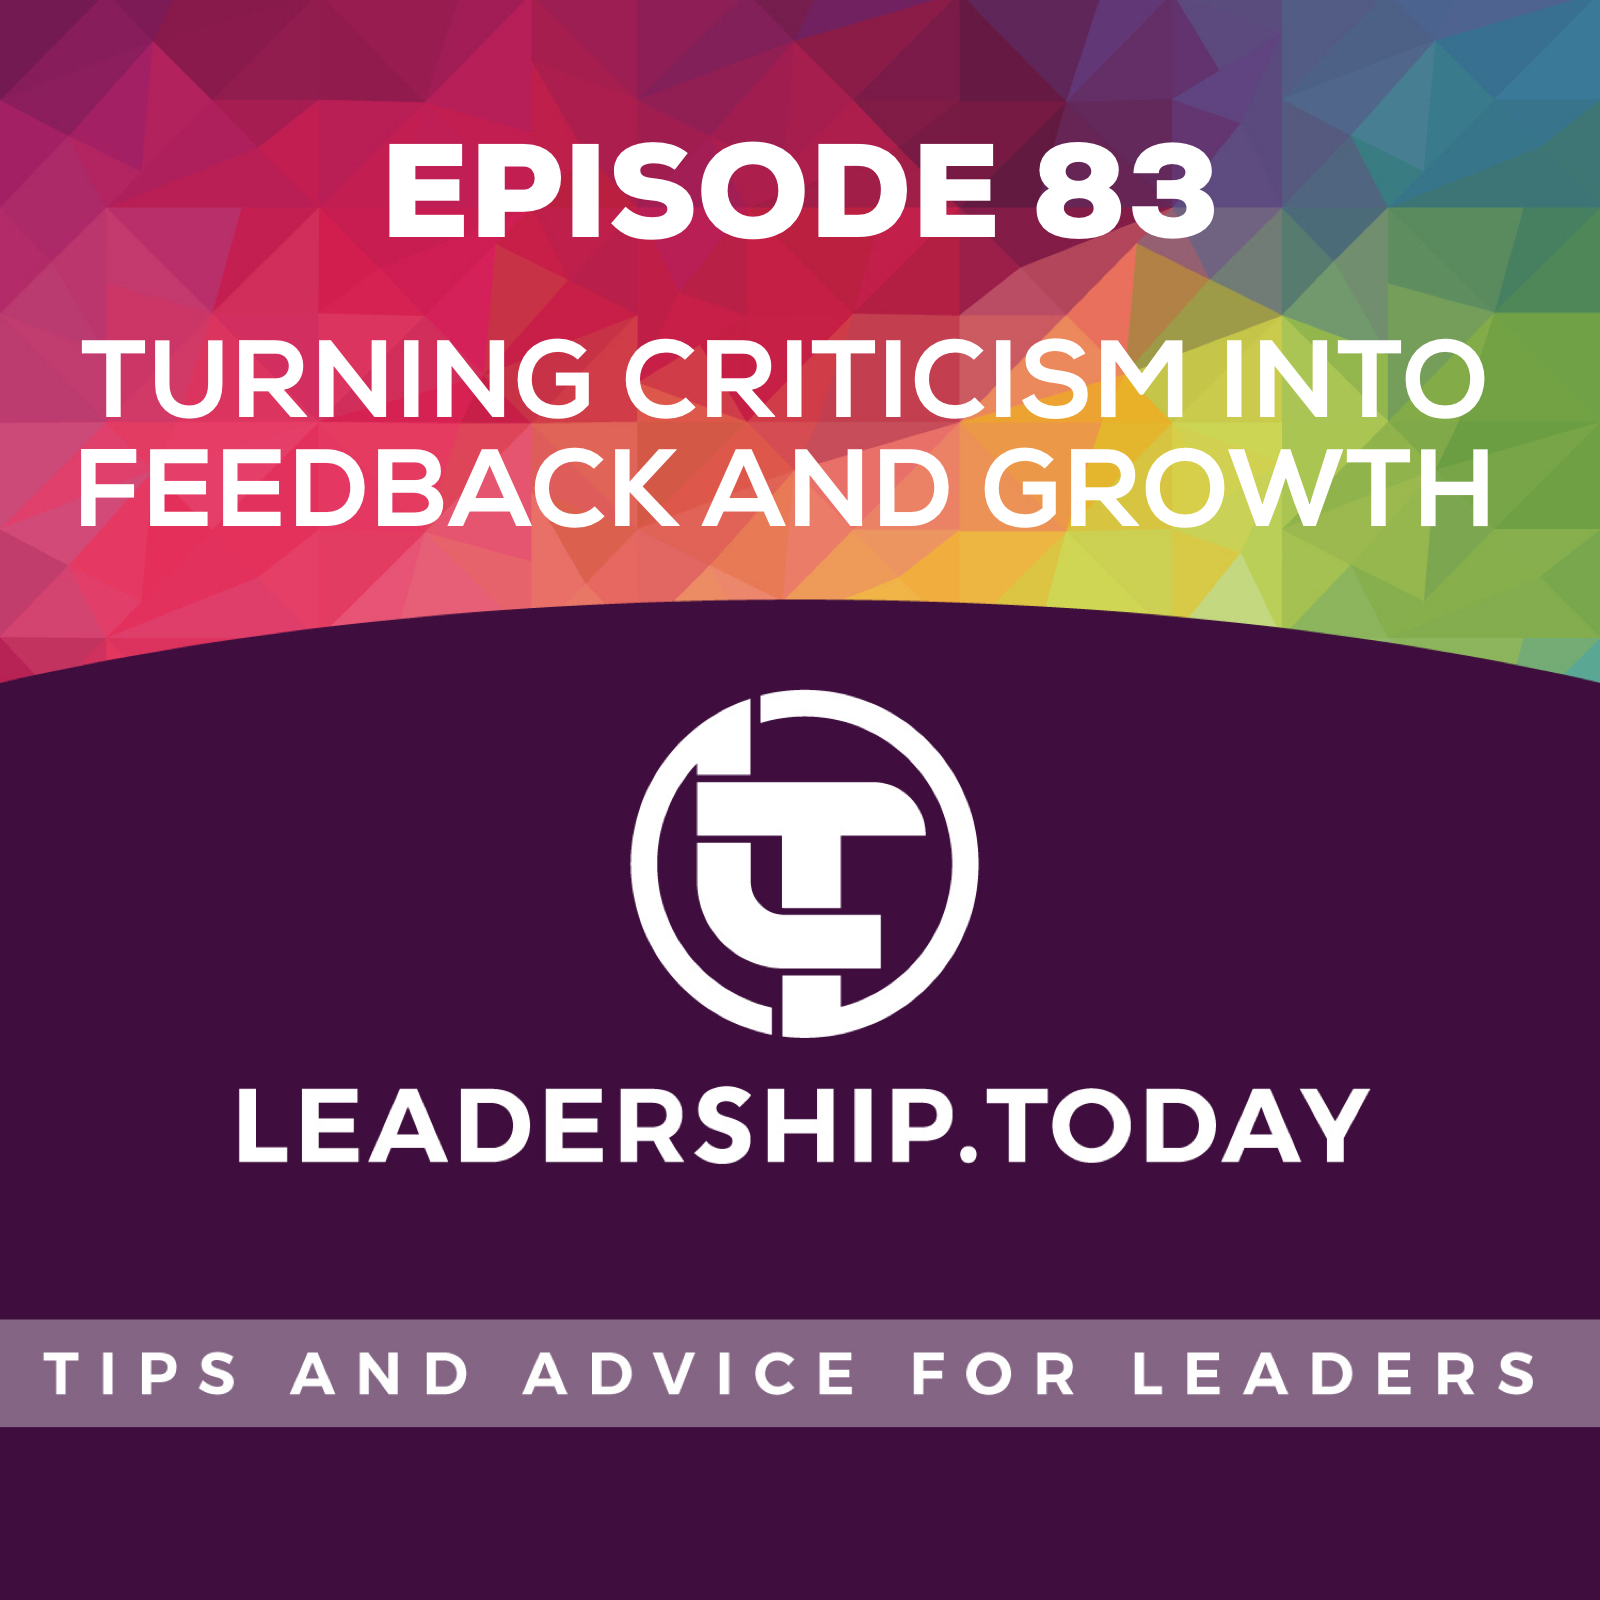 Episode 83 - Turning Criticism into Feedback and Growth